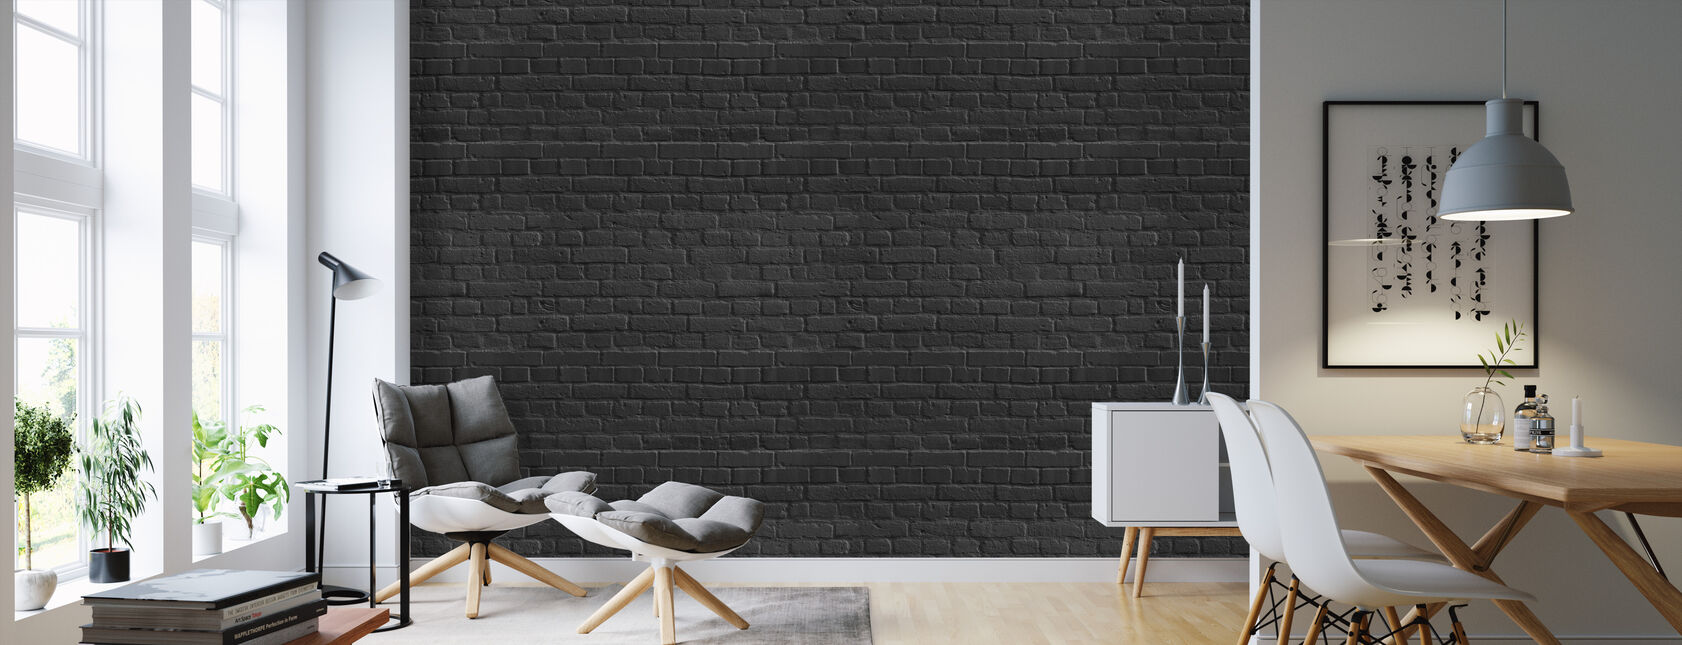 Black Colored Brick Wall - Wallpaper - Living Room